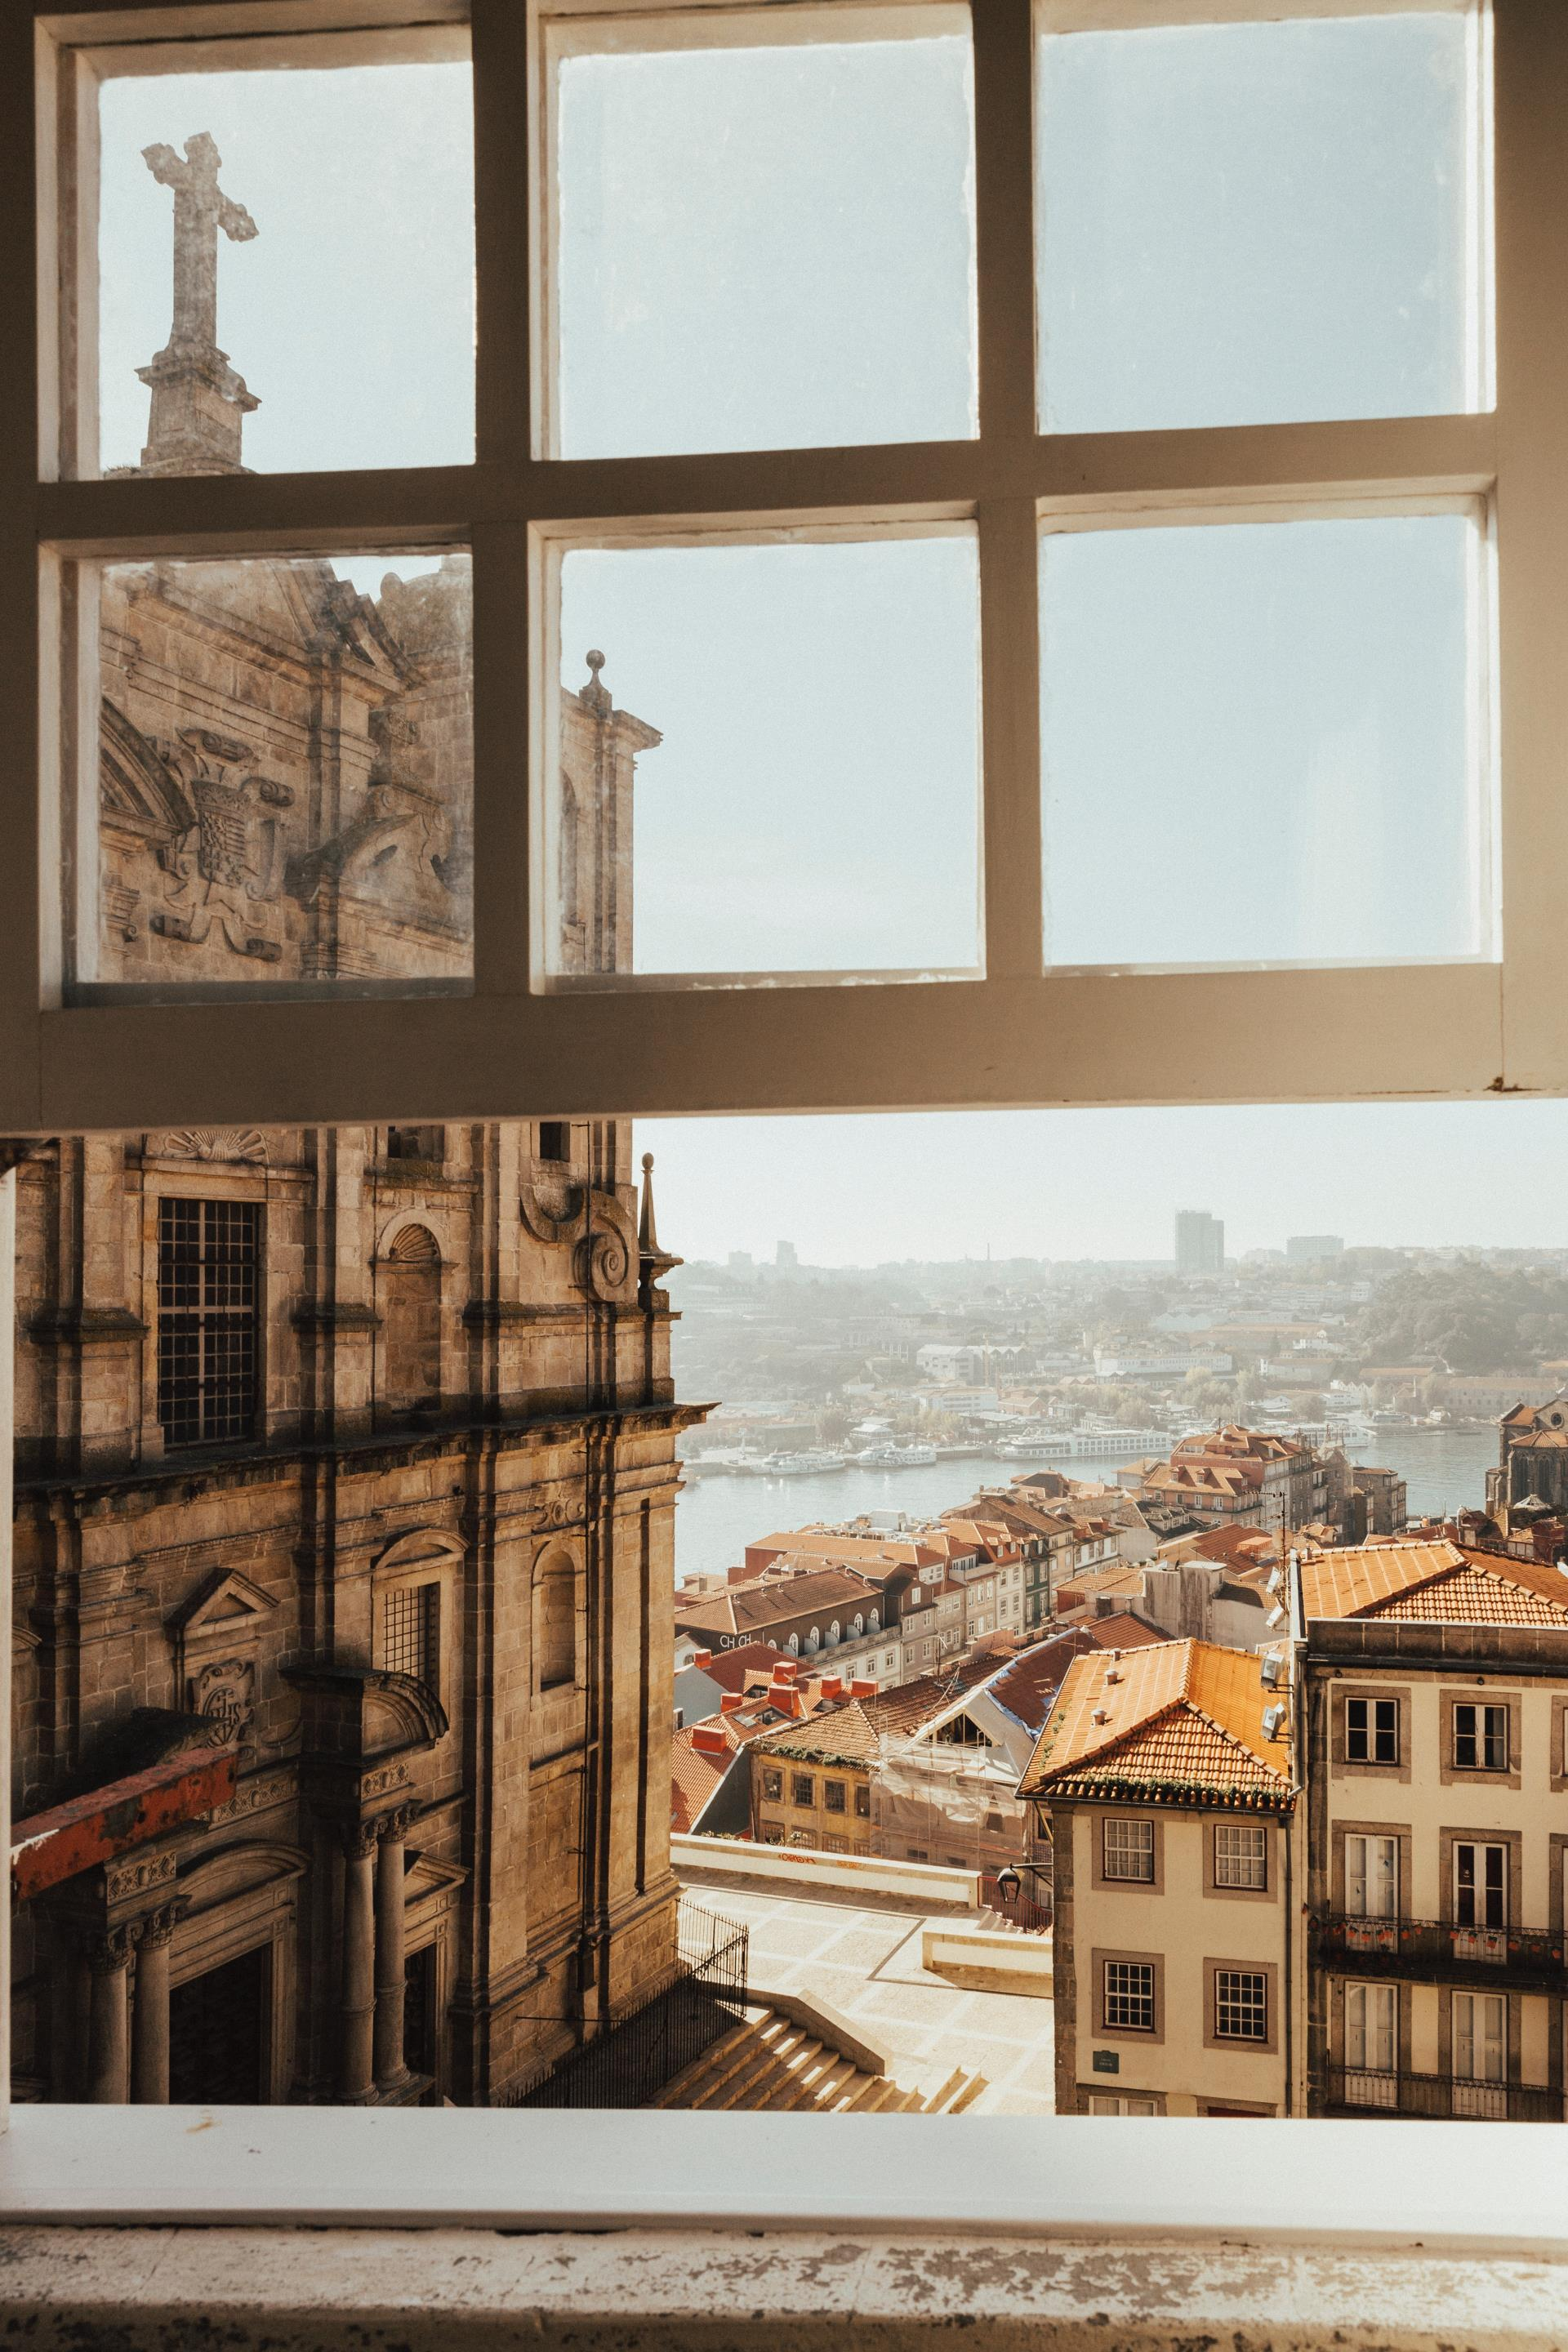 If you are looking to Buy a property or Invest in Portugal contact us!